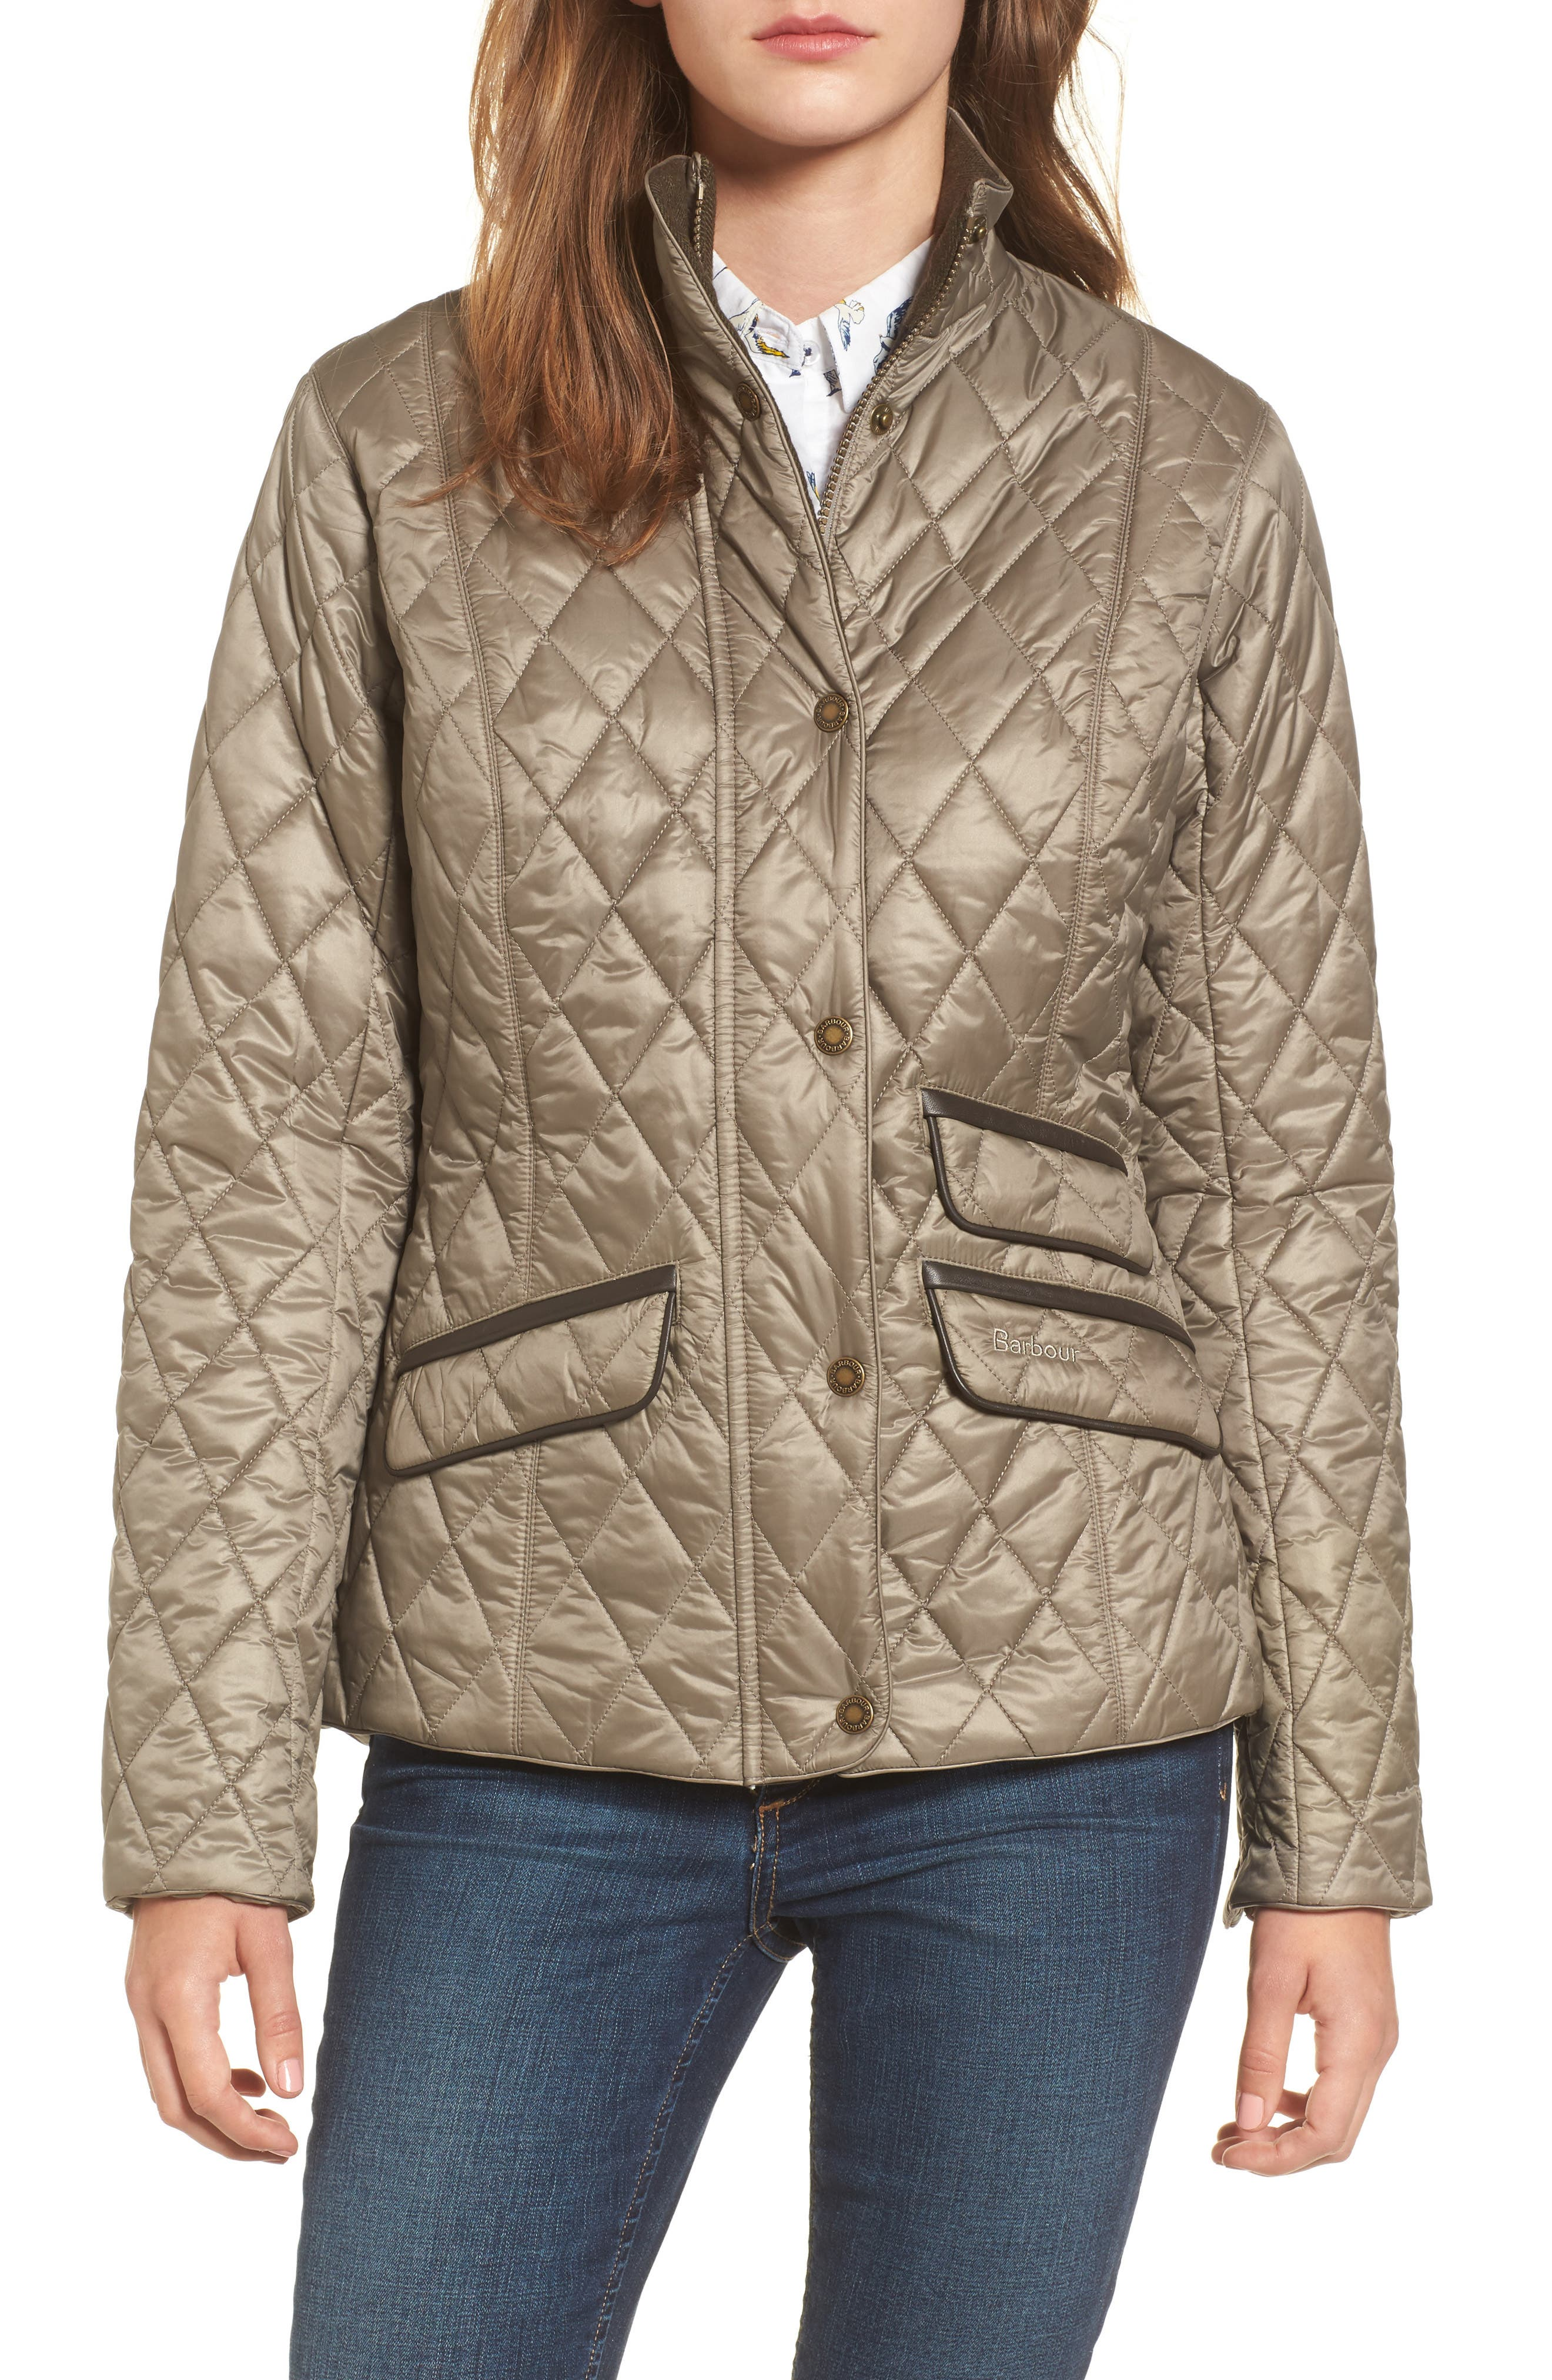 Augustus Water Resistant Quilted Jacket,                             Main thumbnail 1, color,                             Taupe